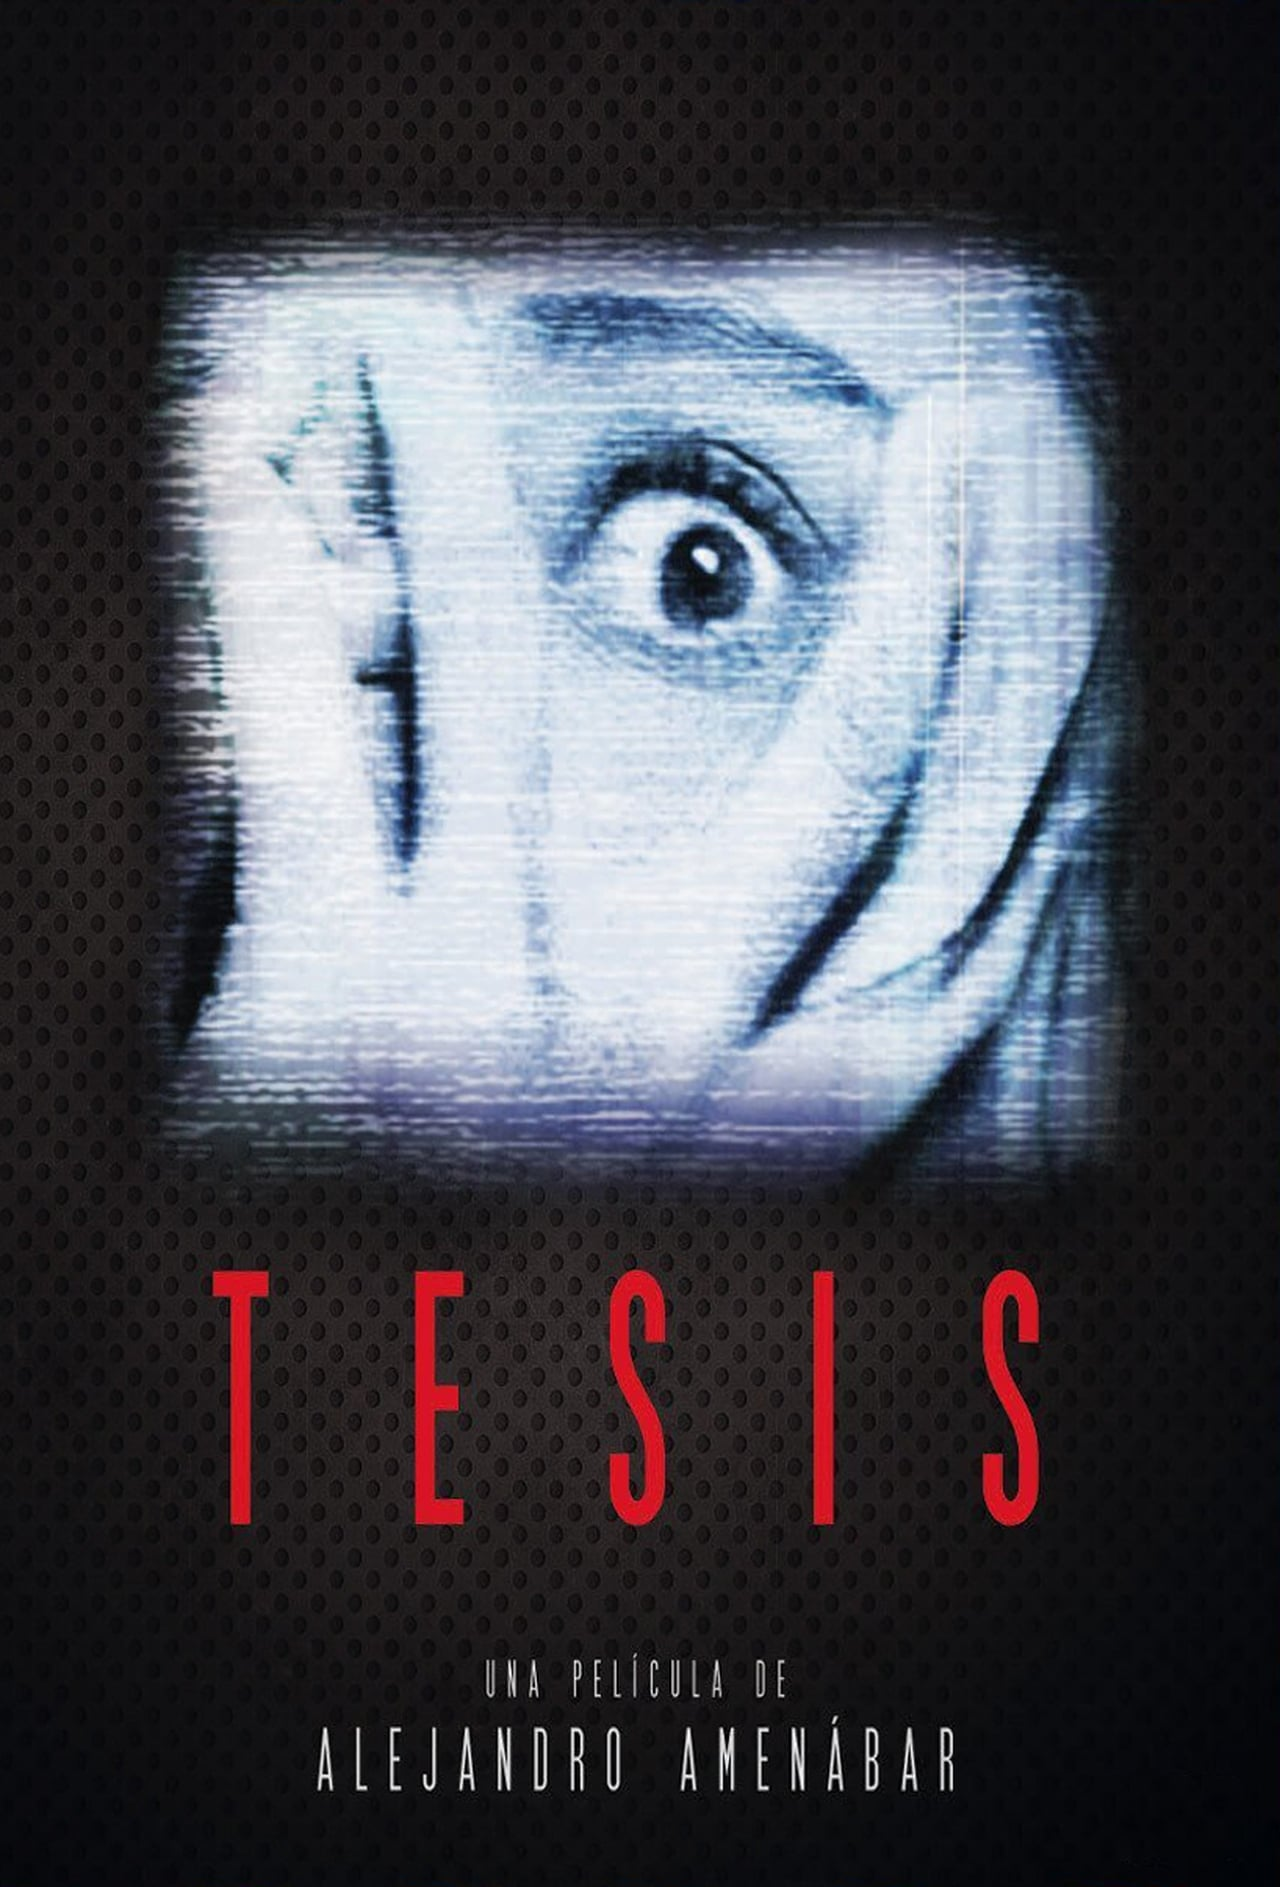 thesis amenabar Tesis (thesis) blu-ray edition ana torrent 45 out  tesis is an american-style thriller from spain's director sensation alejandro amenabar (the others, open your.